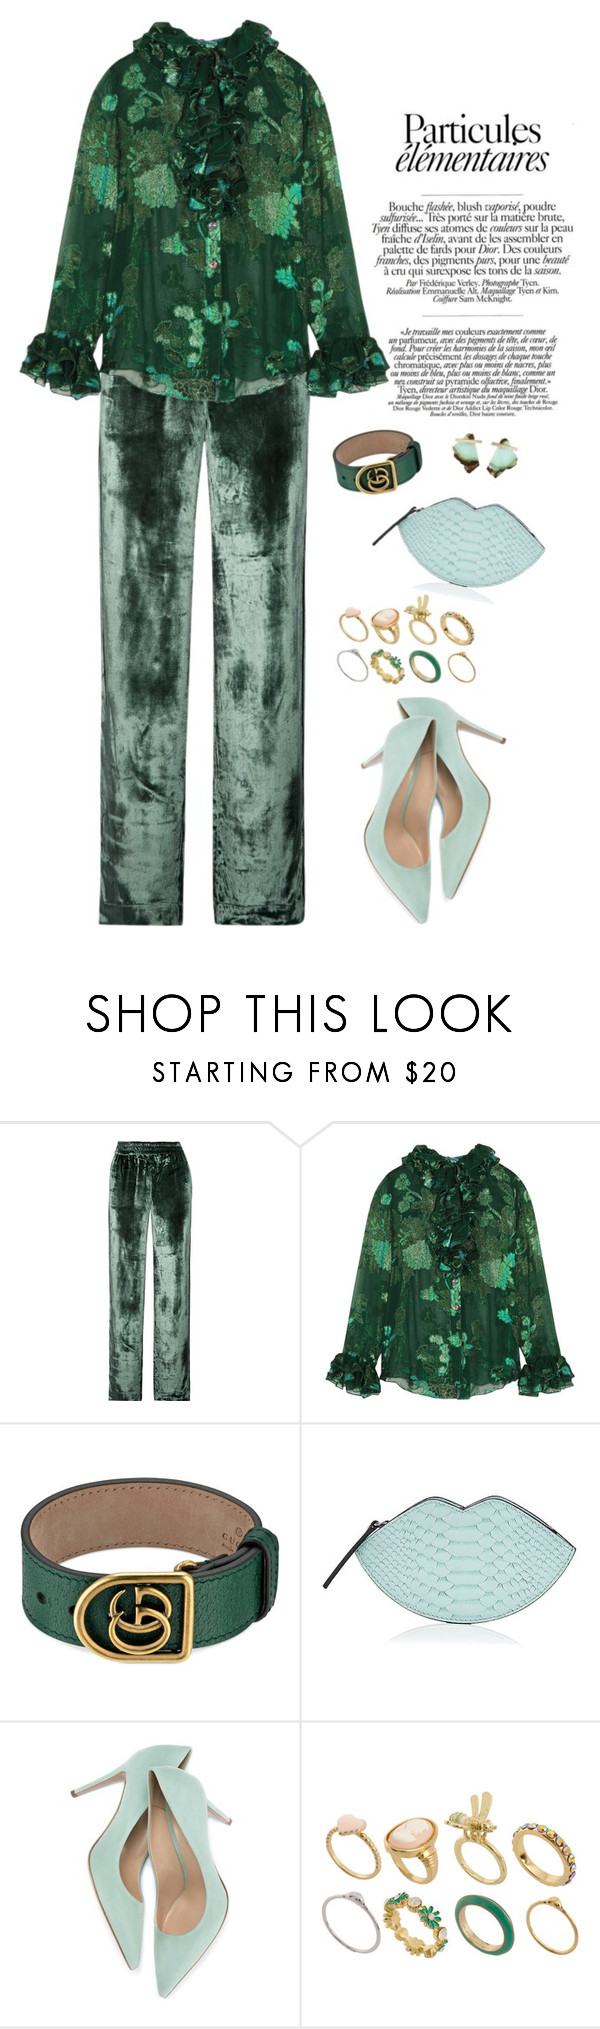 J brand green velvet dress  Earth  Anna sui Shoe bag and Clothing accessories